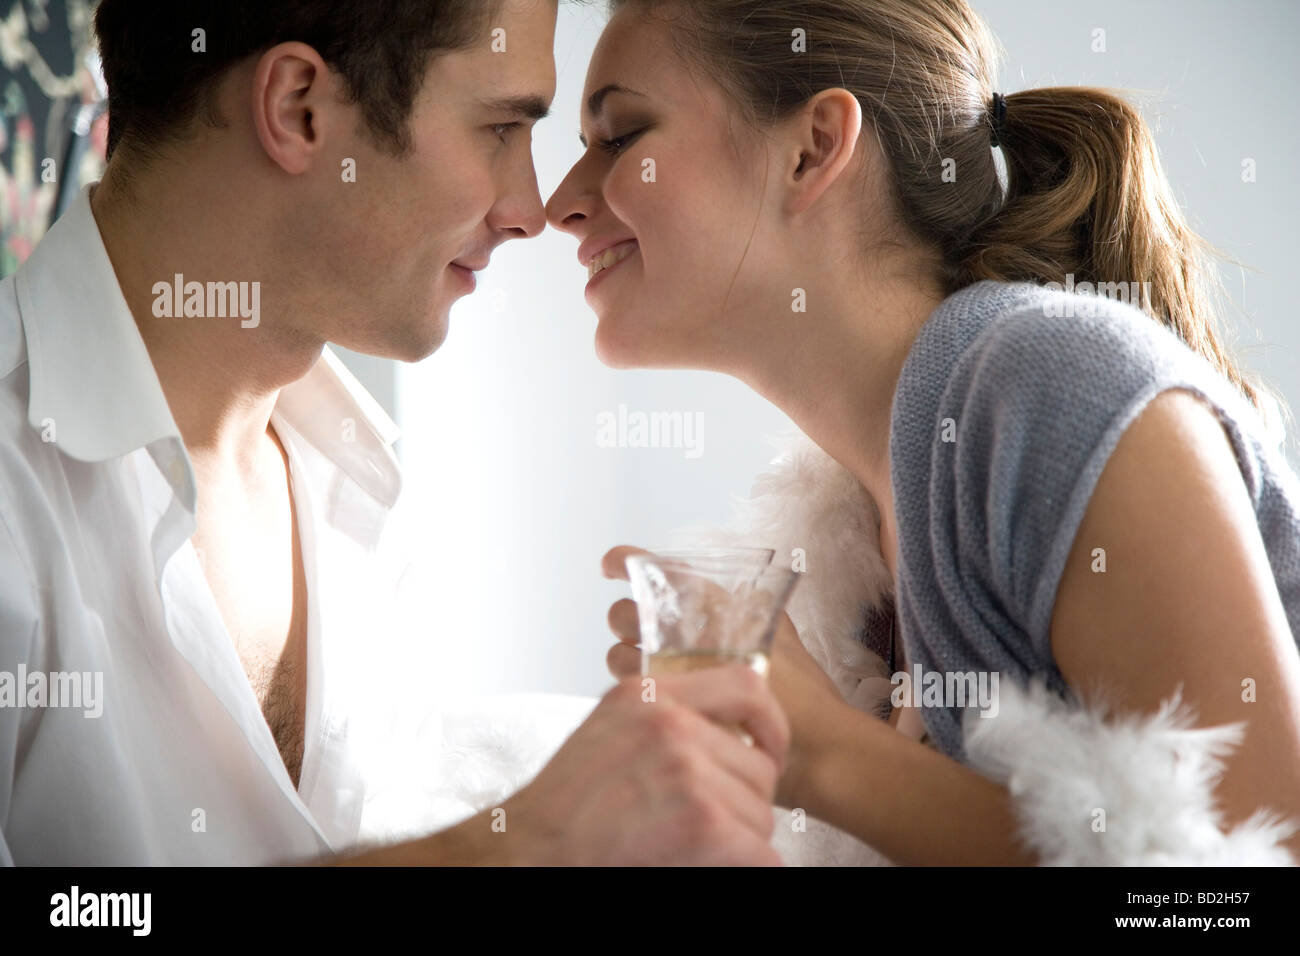 Couple drinking champagne Photo Stock